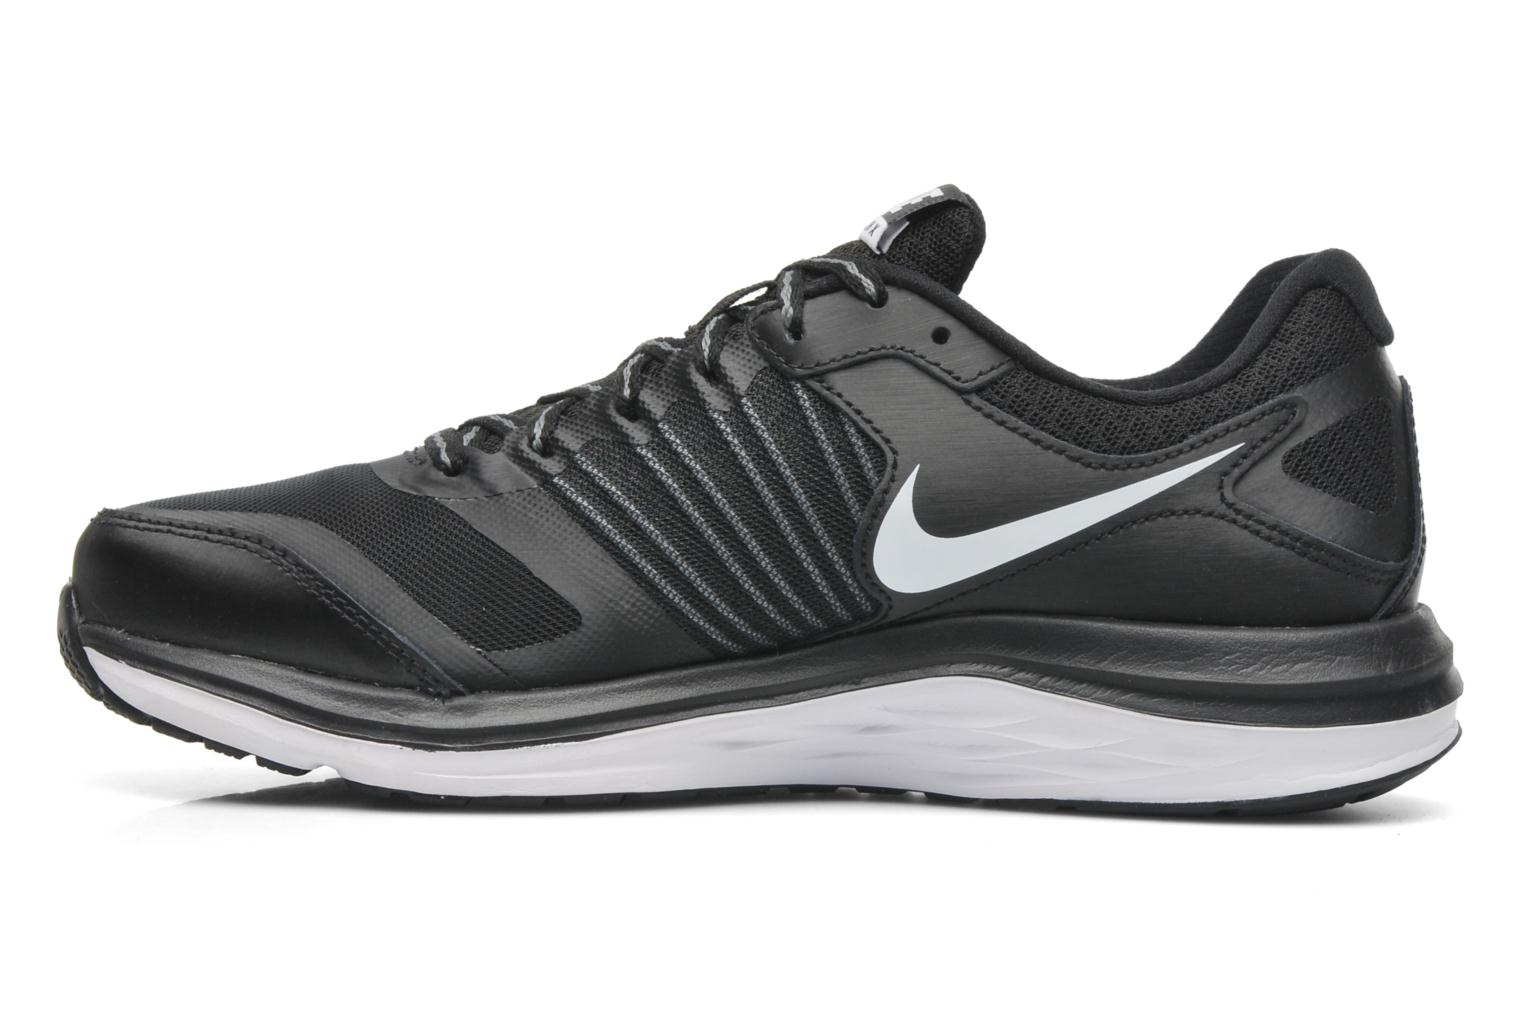 56eff78e25a69 Nike Zoom All Out Low Skroutz 57% Off